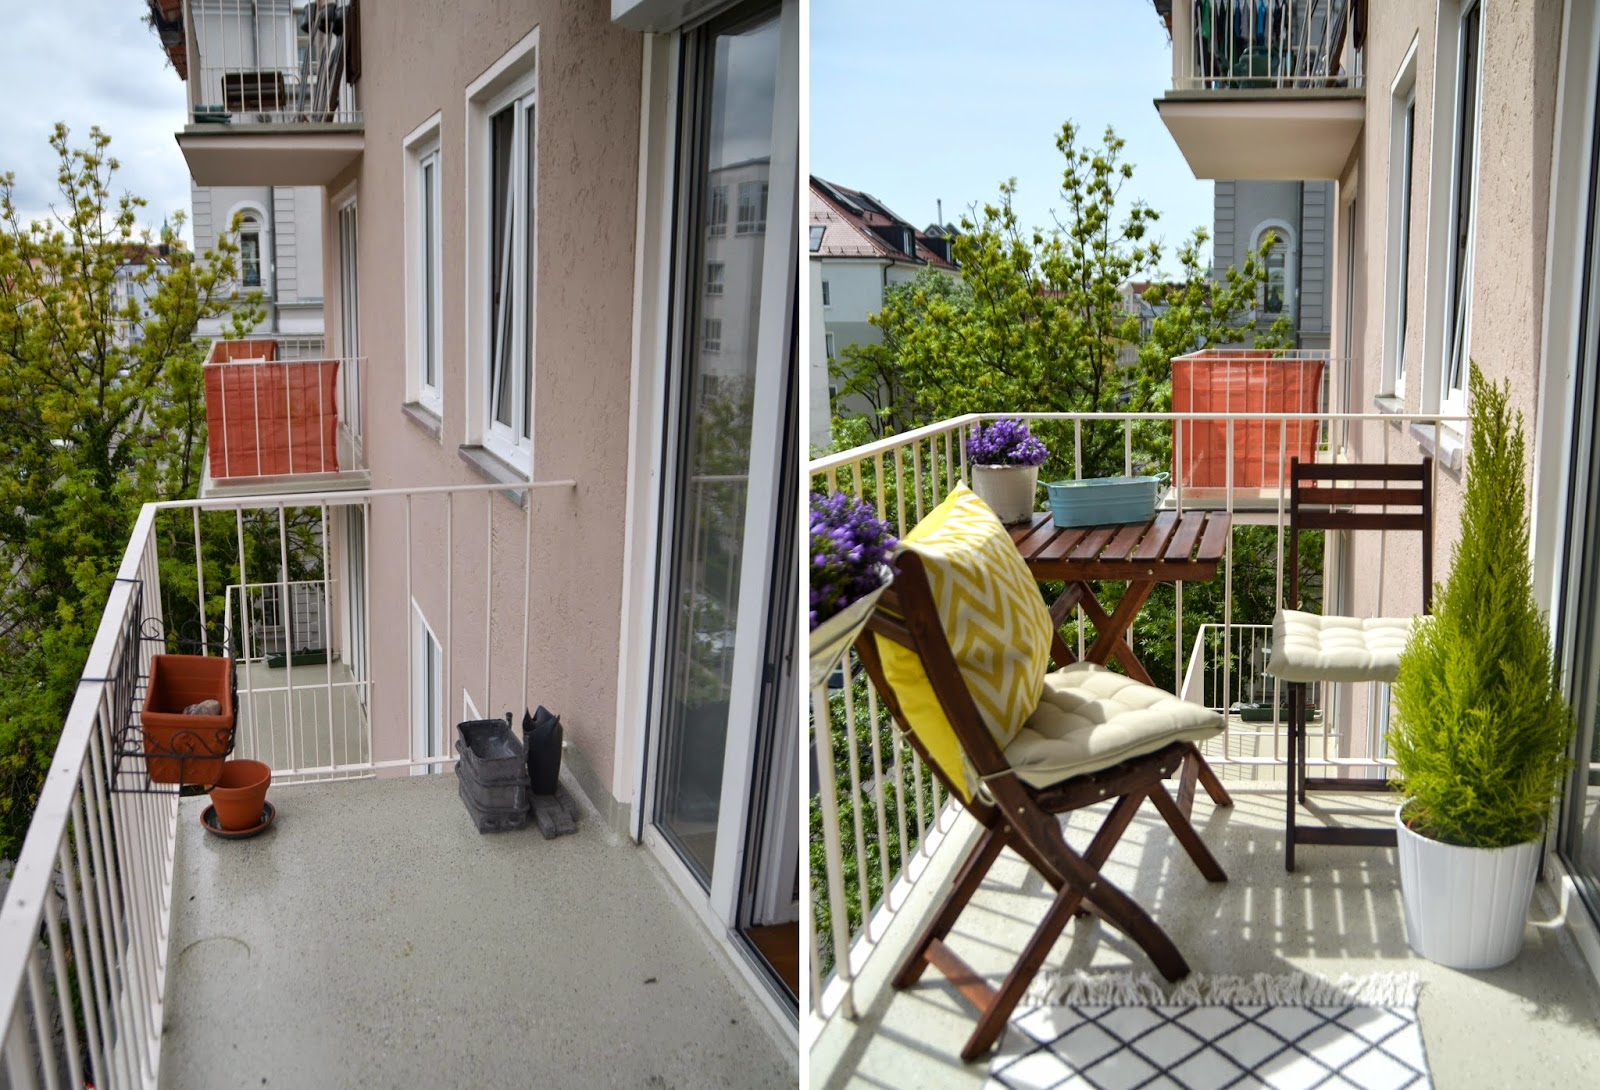 Balcony makeover: before & after kristjaana.